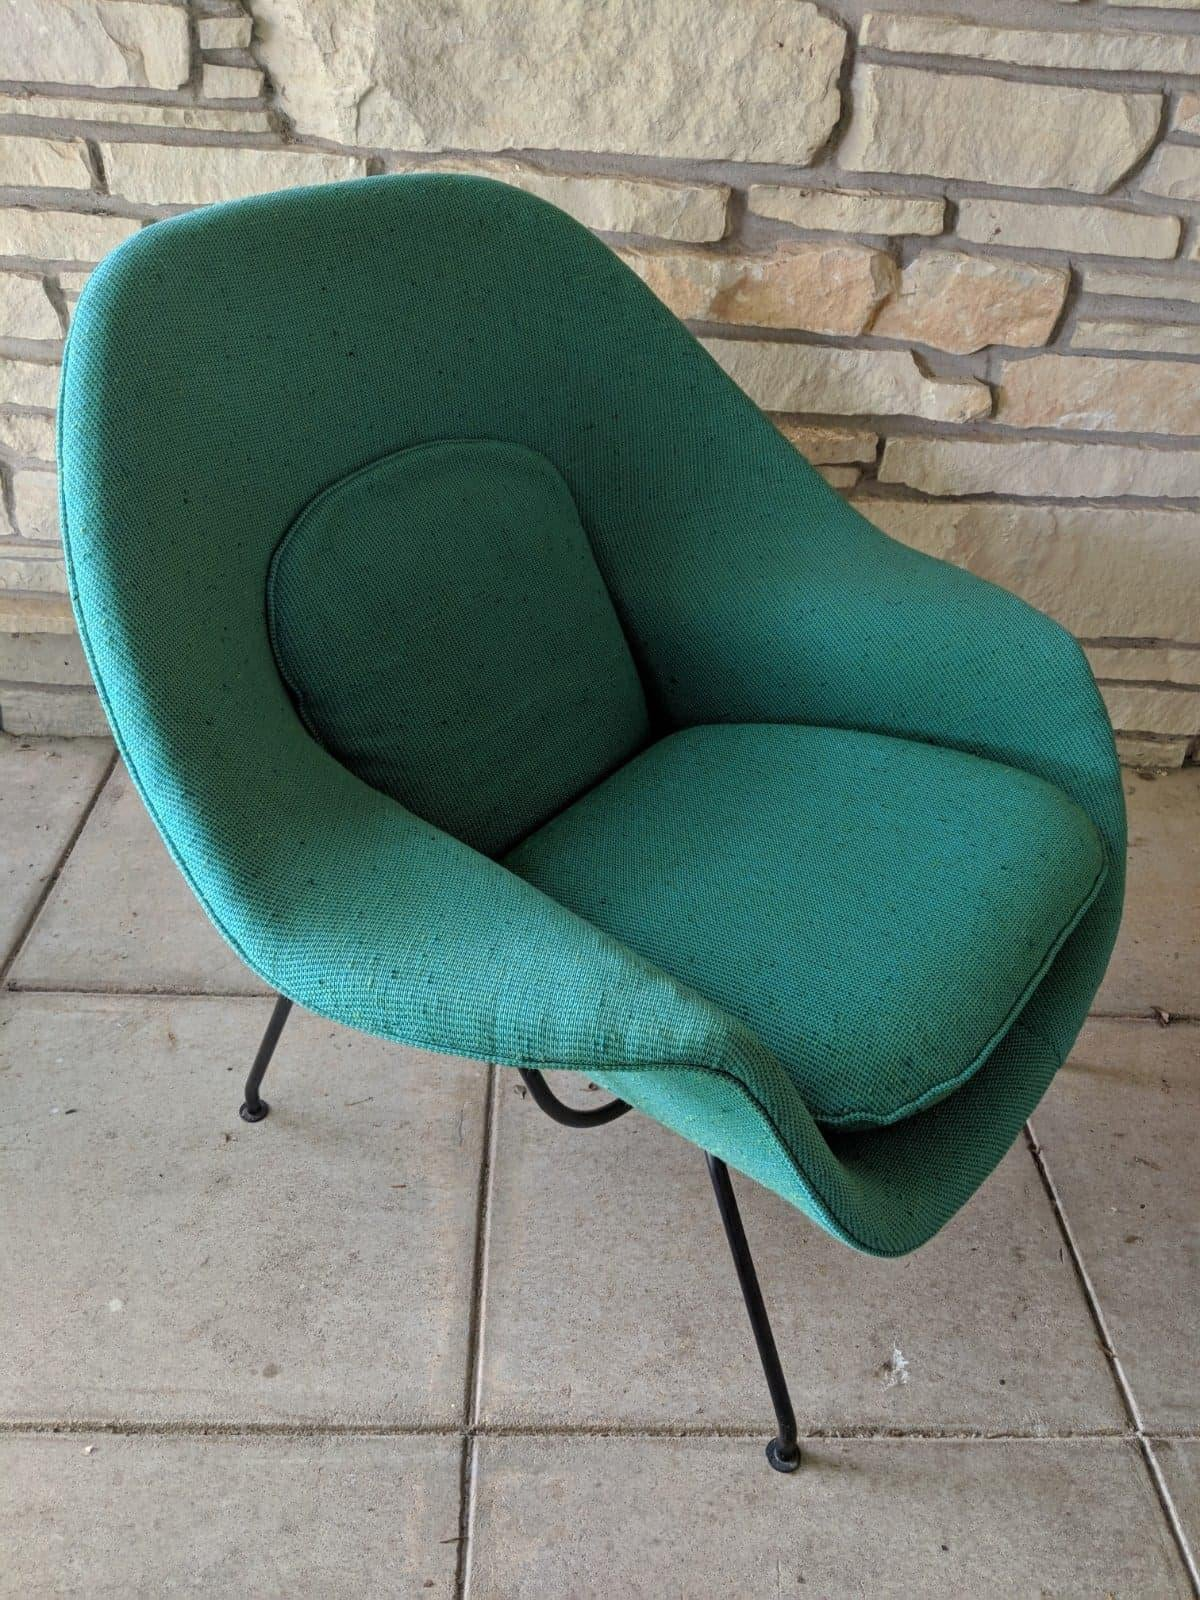 Knoll 1960s Eero Saarinen Knoll Aquamarine Upholstered Womb Chair For Sale    Image 4 Of 4